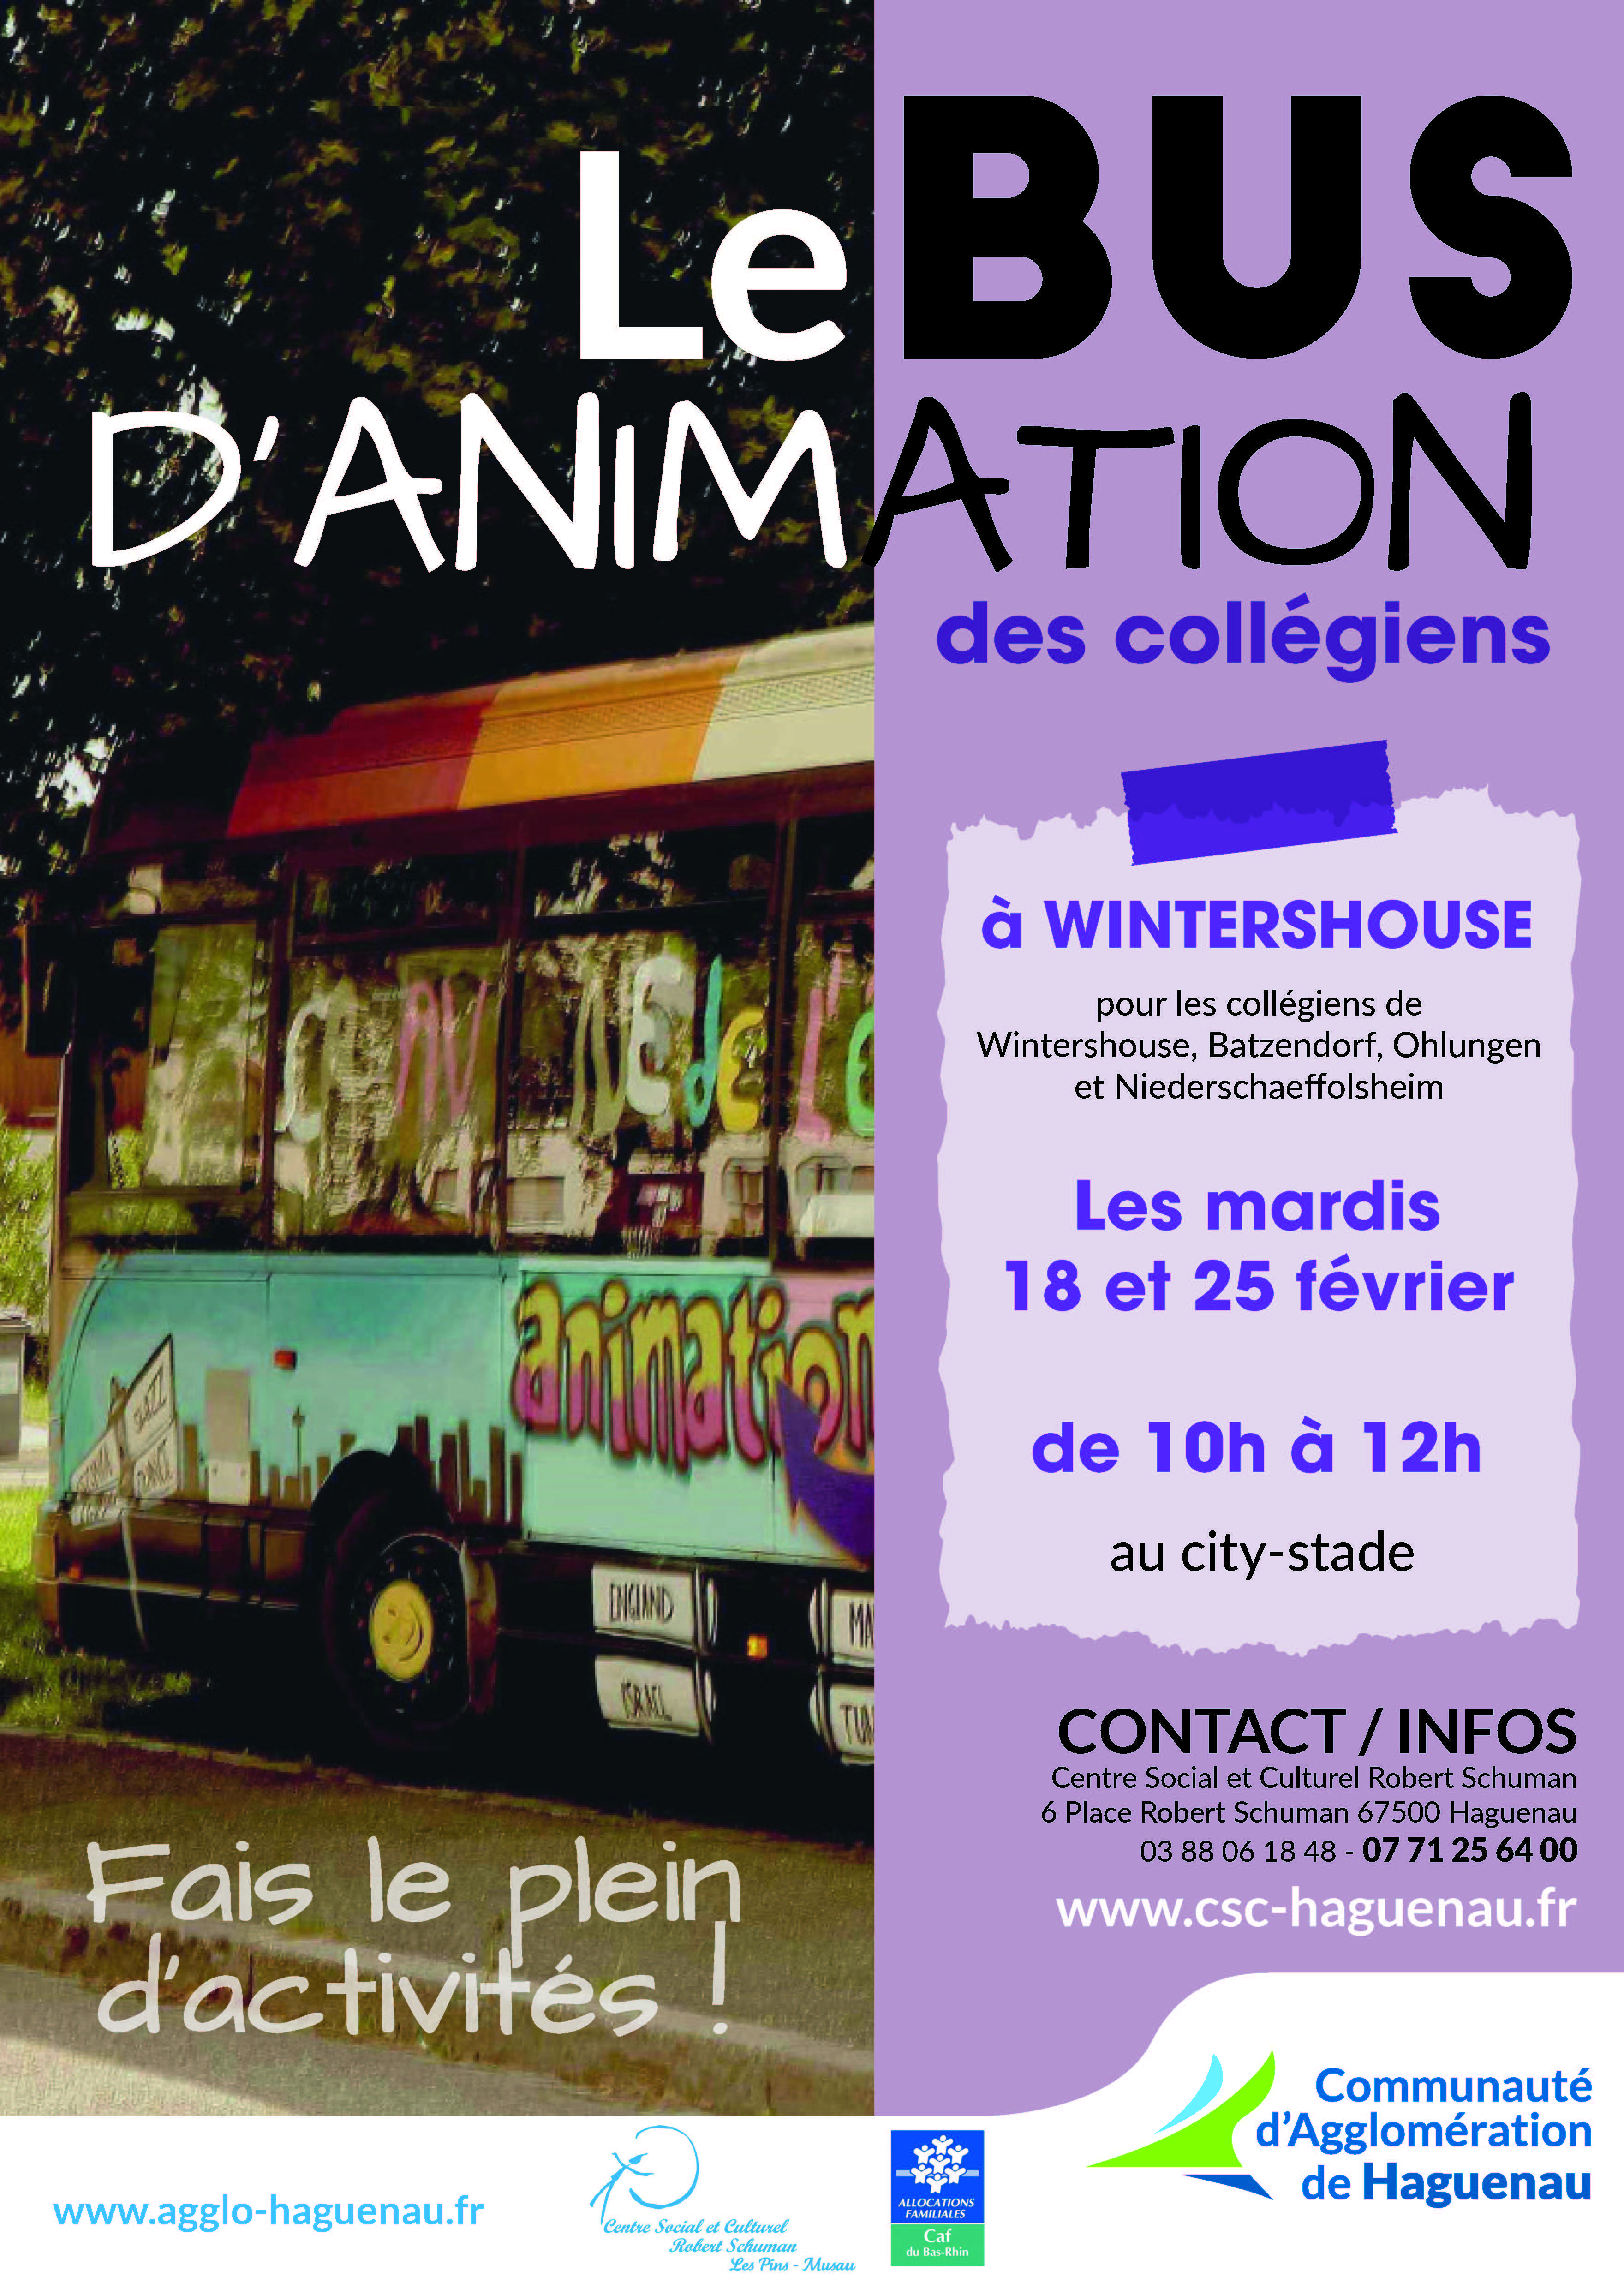 BUS D'ANIMATION à Wintershouse